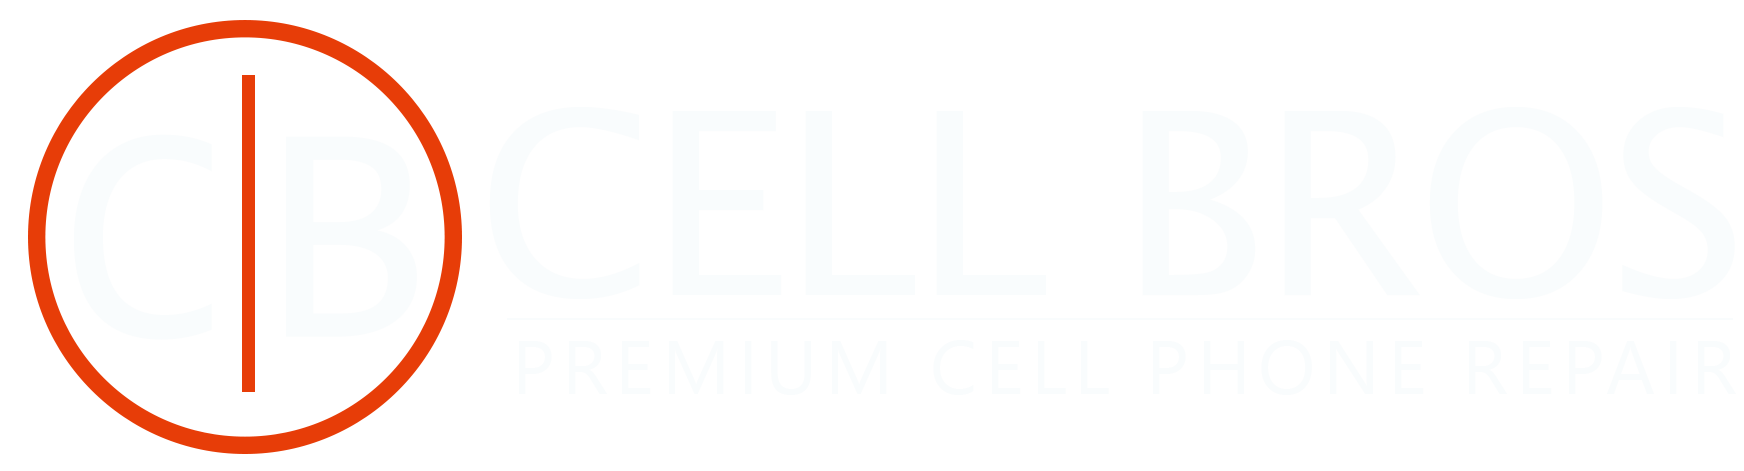 Cell Bros